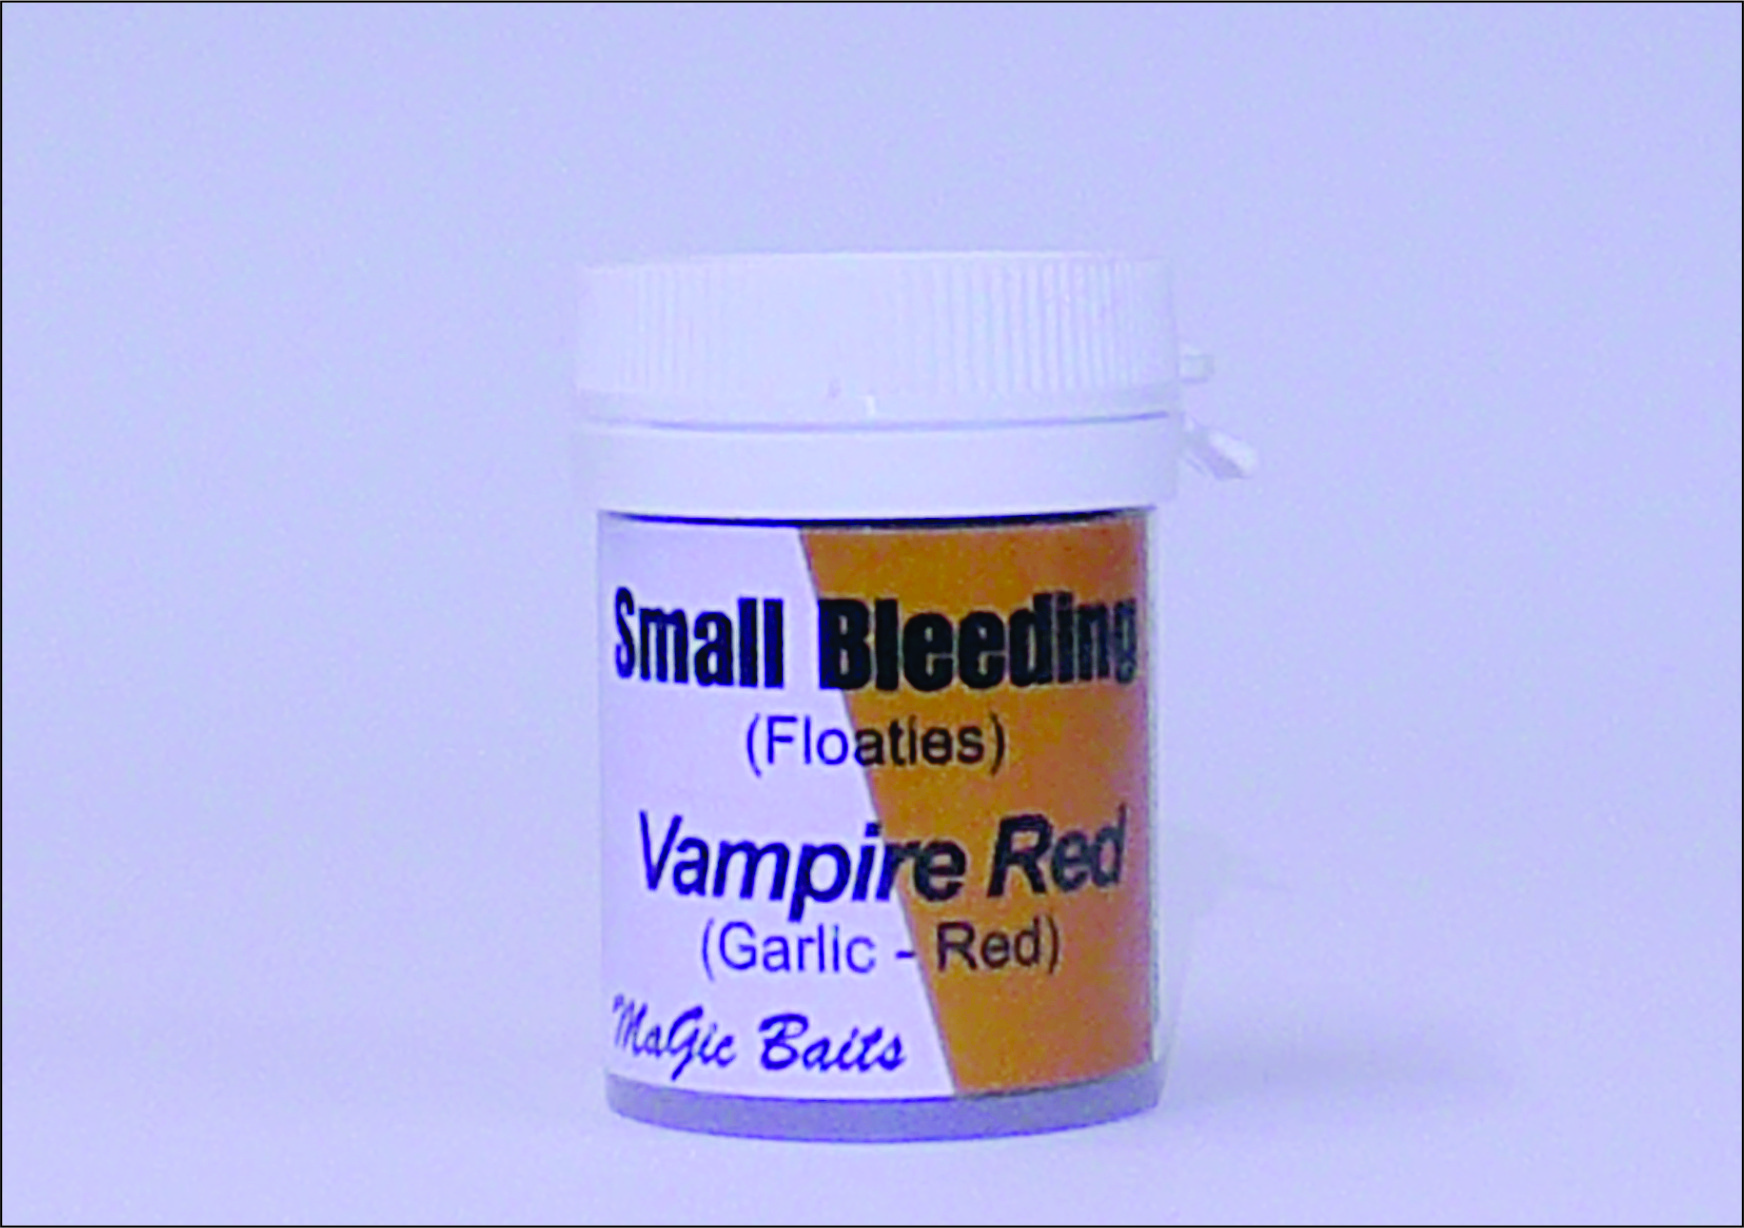 Vampire Red Small Bleeding Floaties